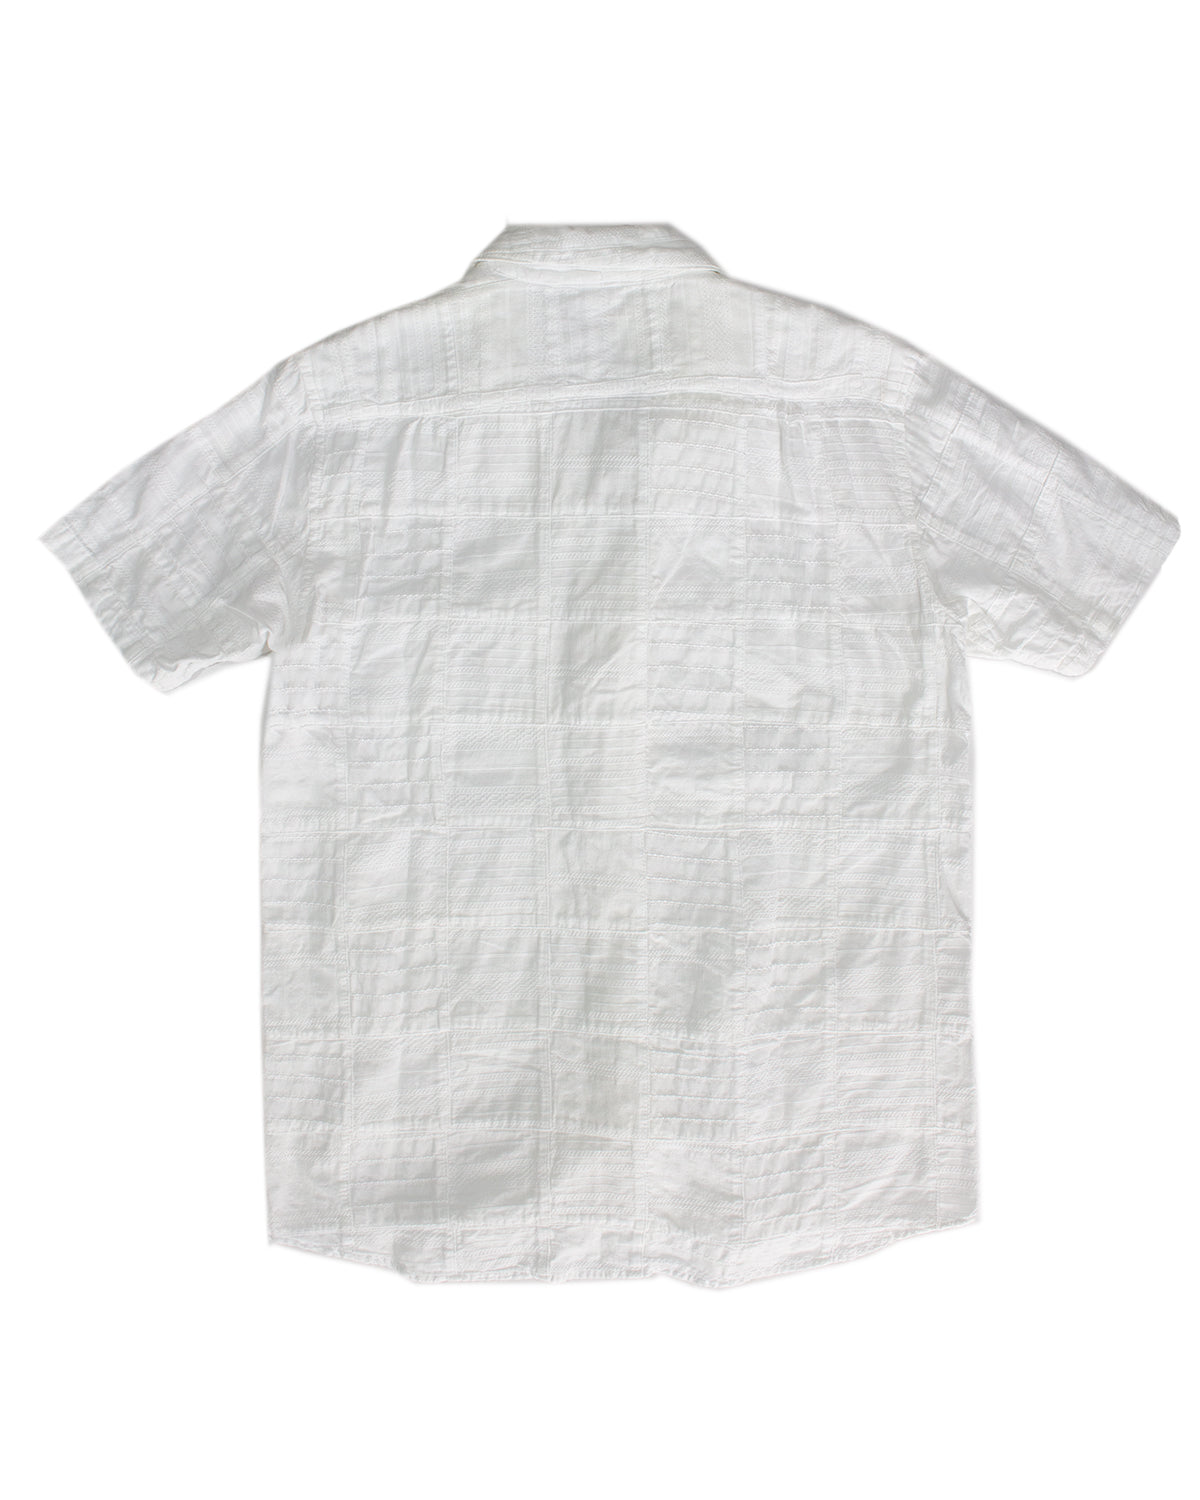 Kapital Woven Patchwork Shirt with Adjustable Collar